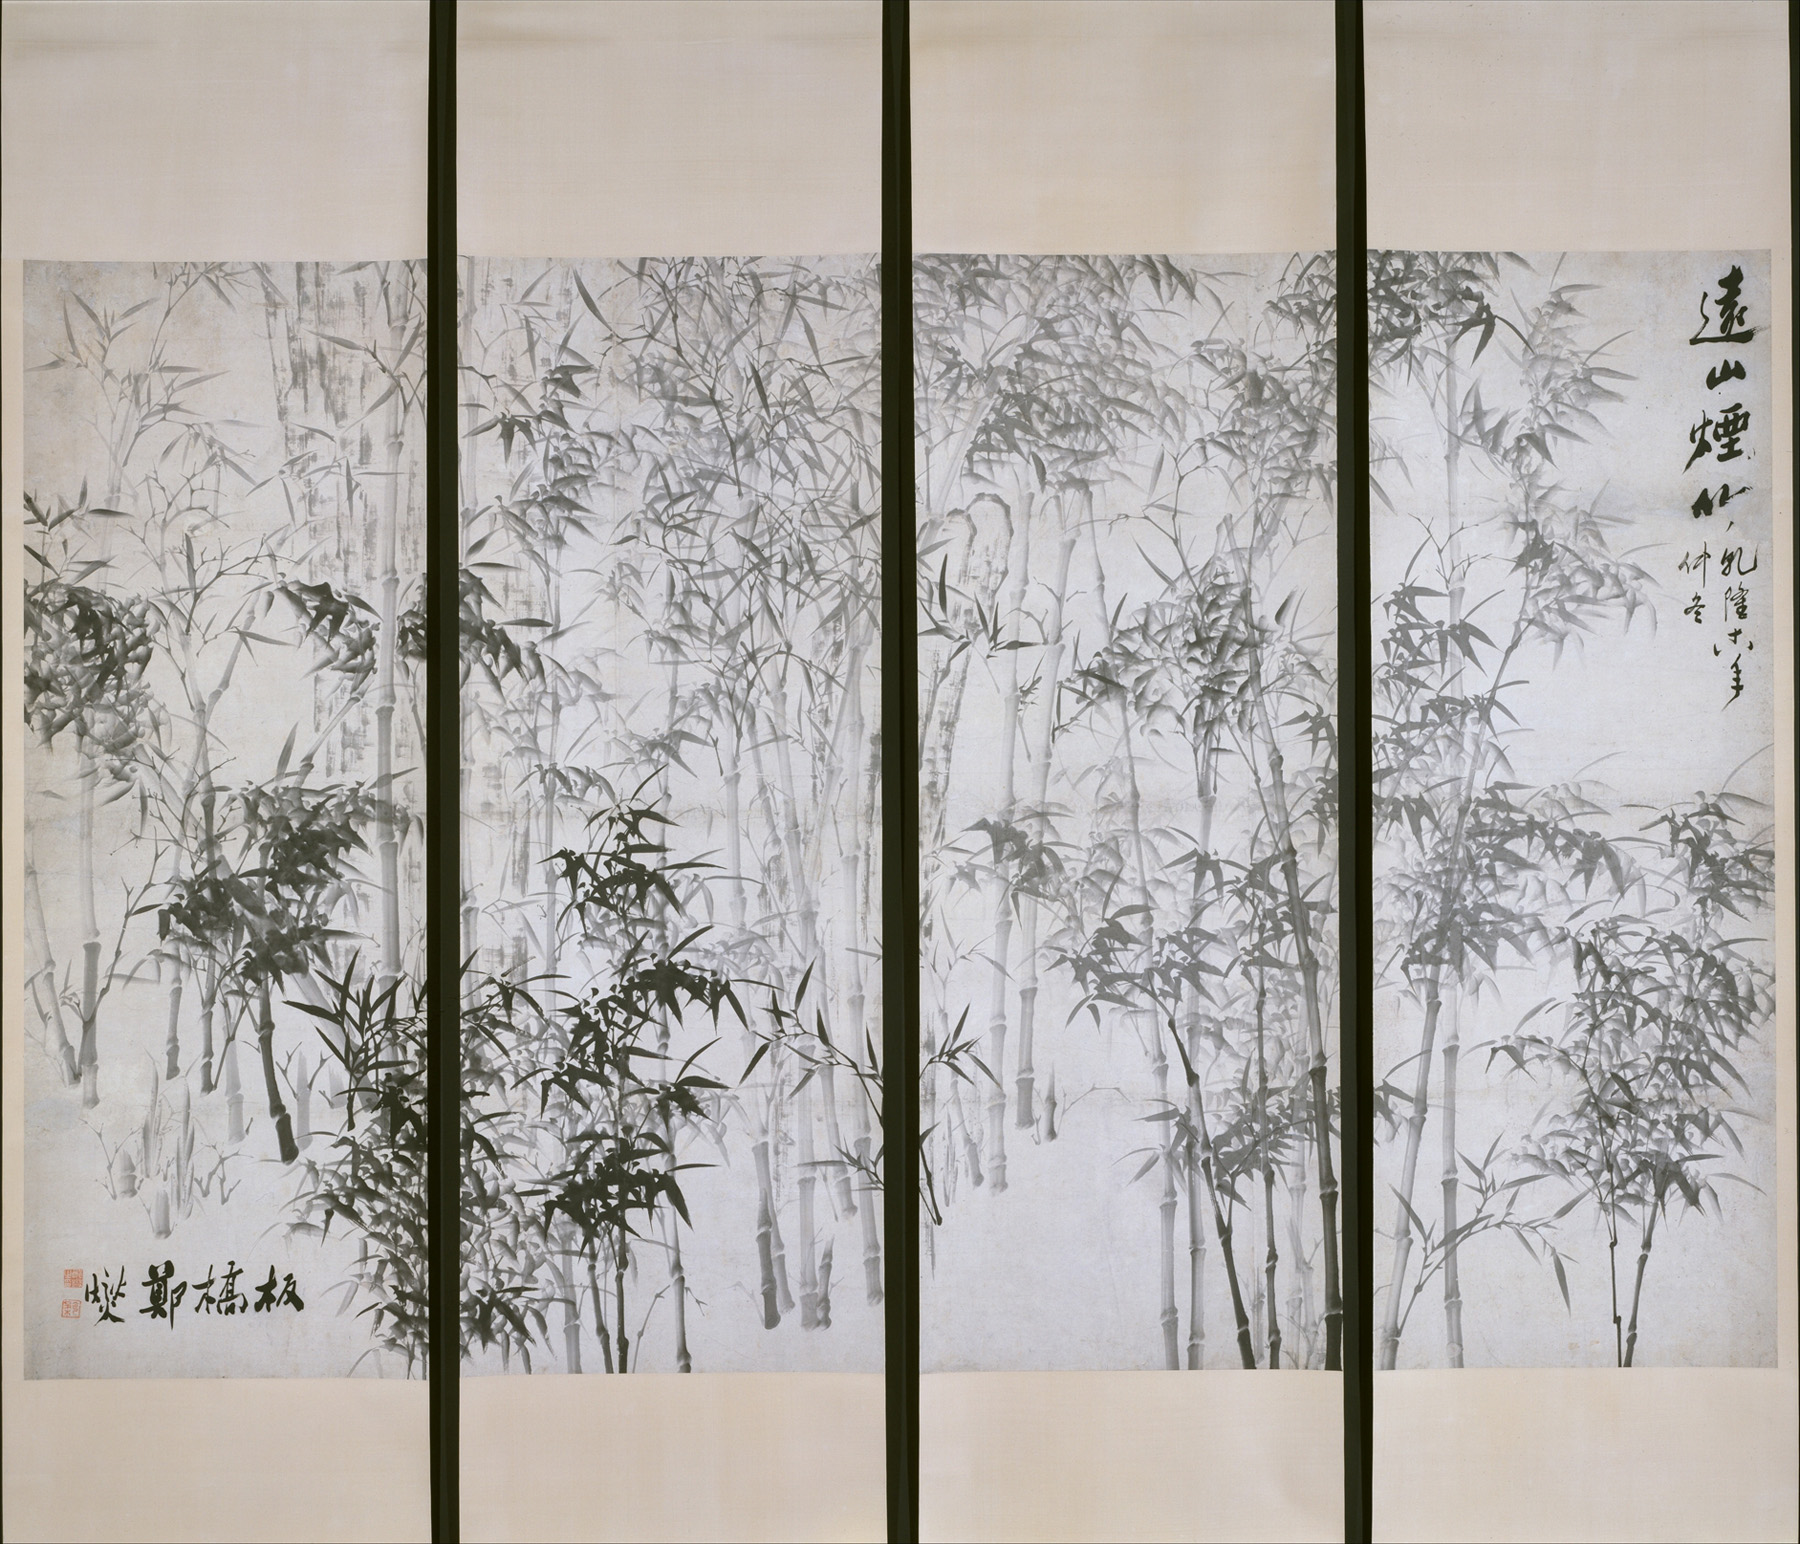 Zheng Xie: Misty Bamboo on a Distant Mountain